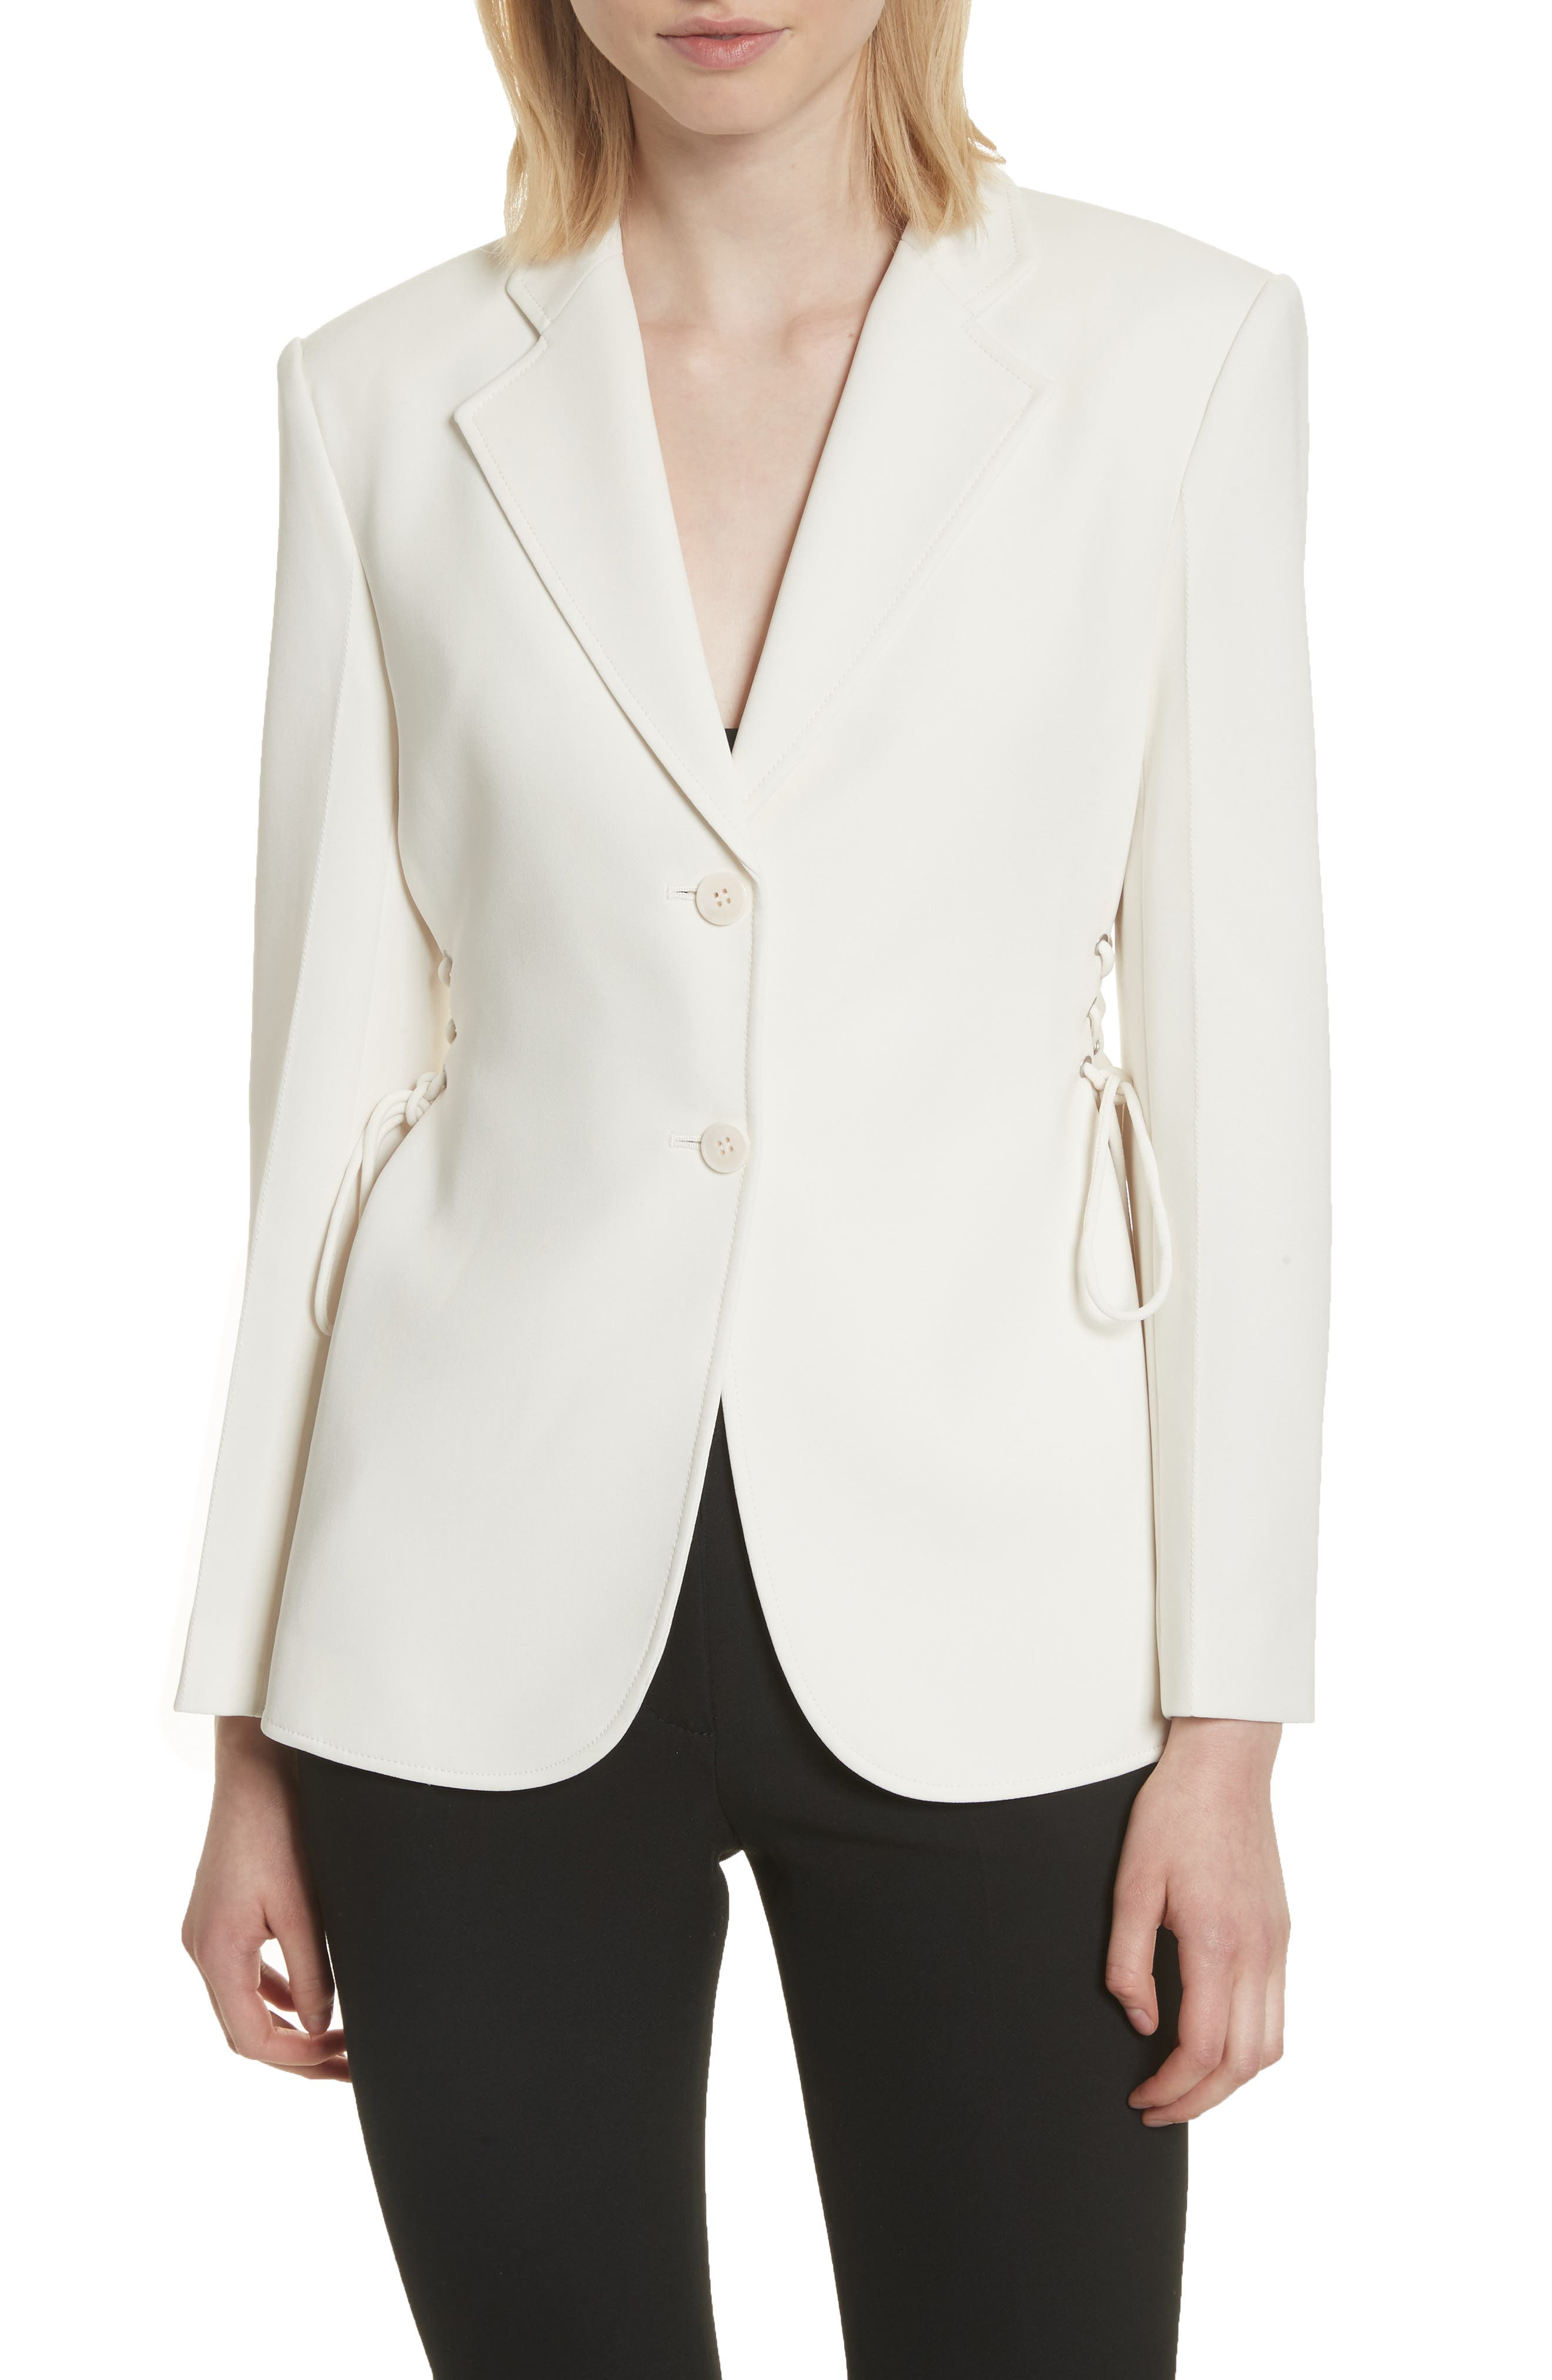 Admiral Crepe Lace-Up Suit Jacket,                             Main thumbnail 1, color,                             Warm Ivory